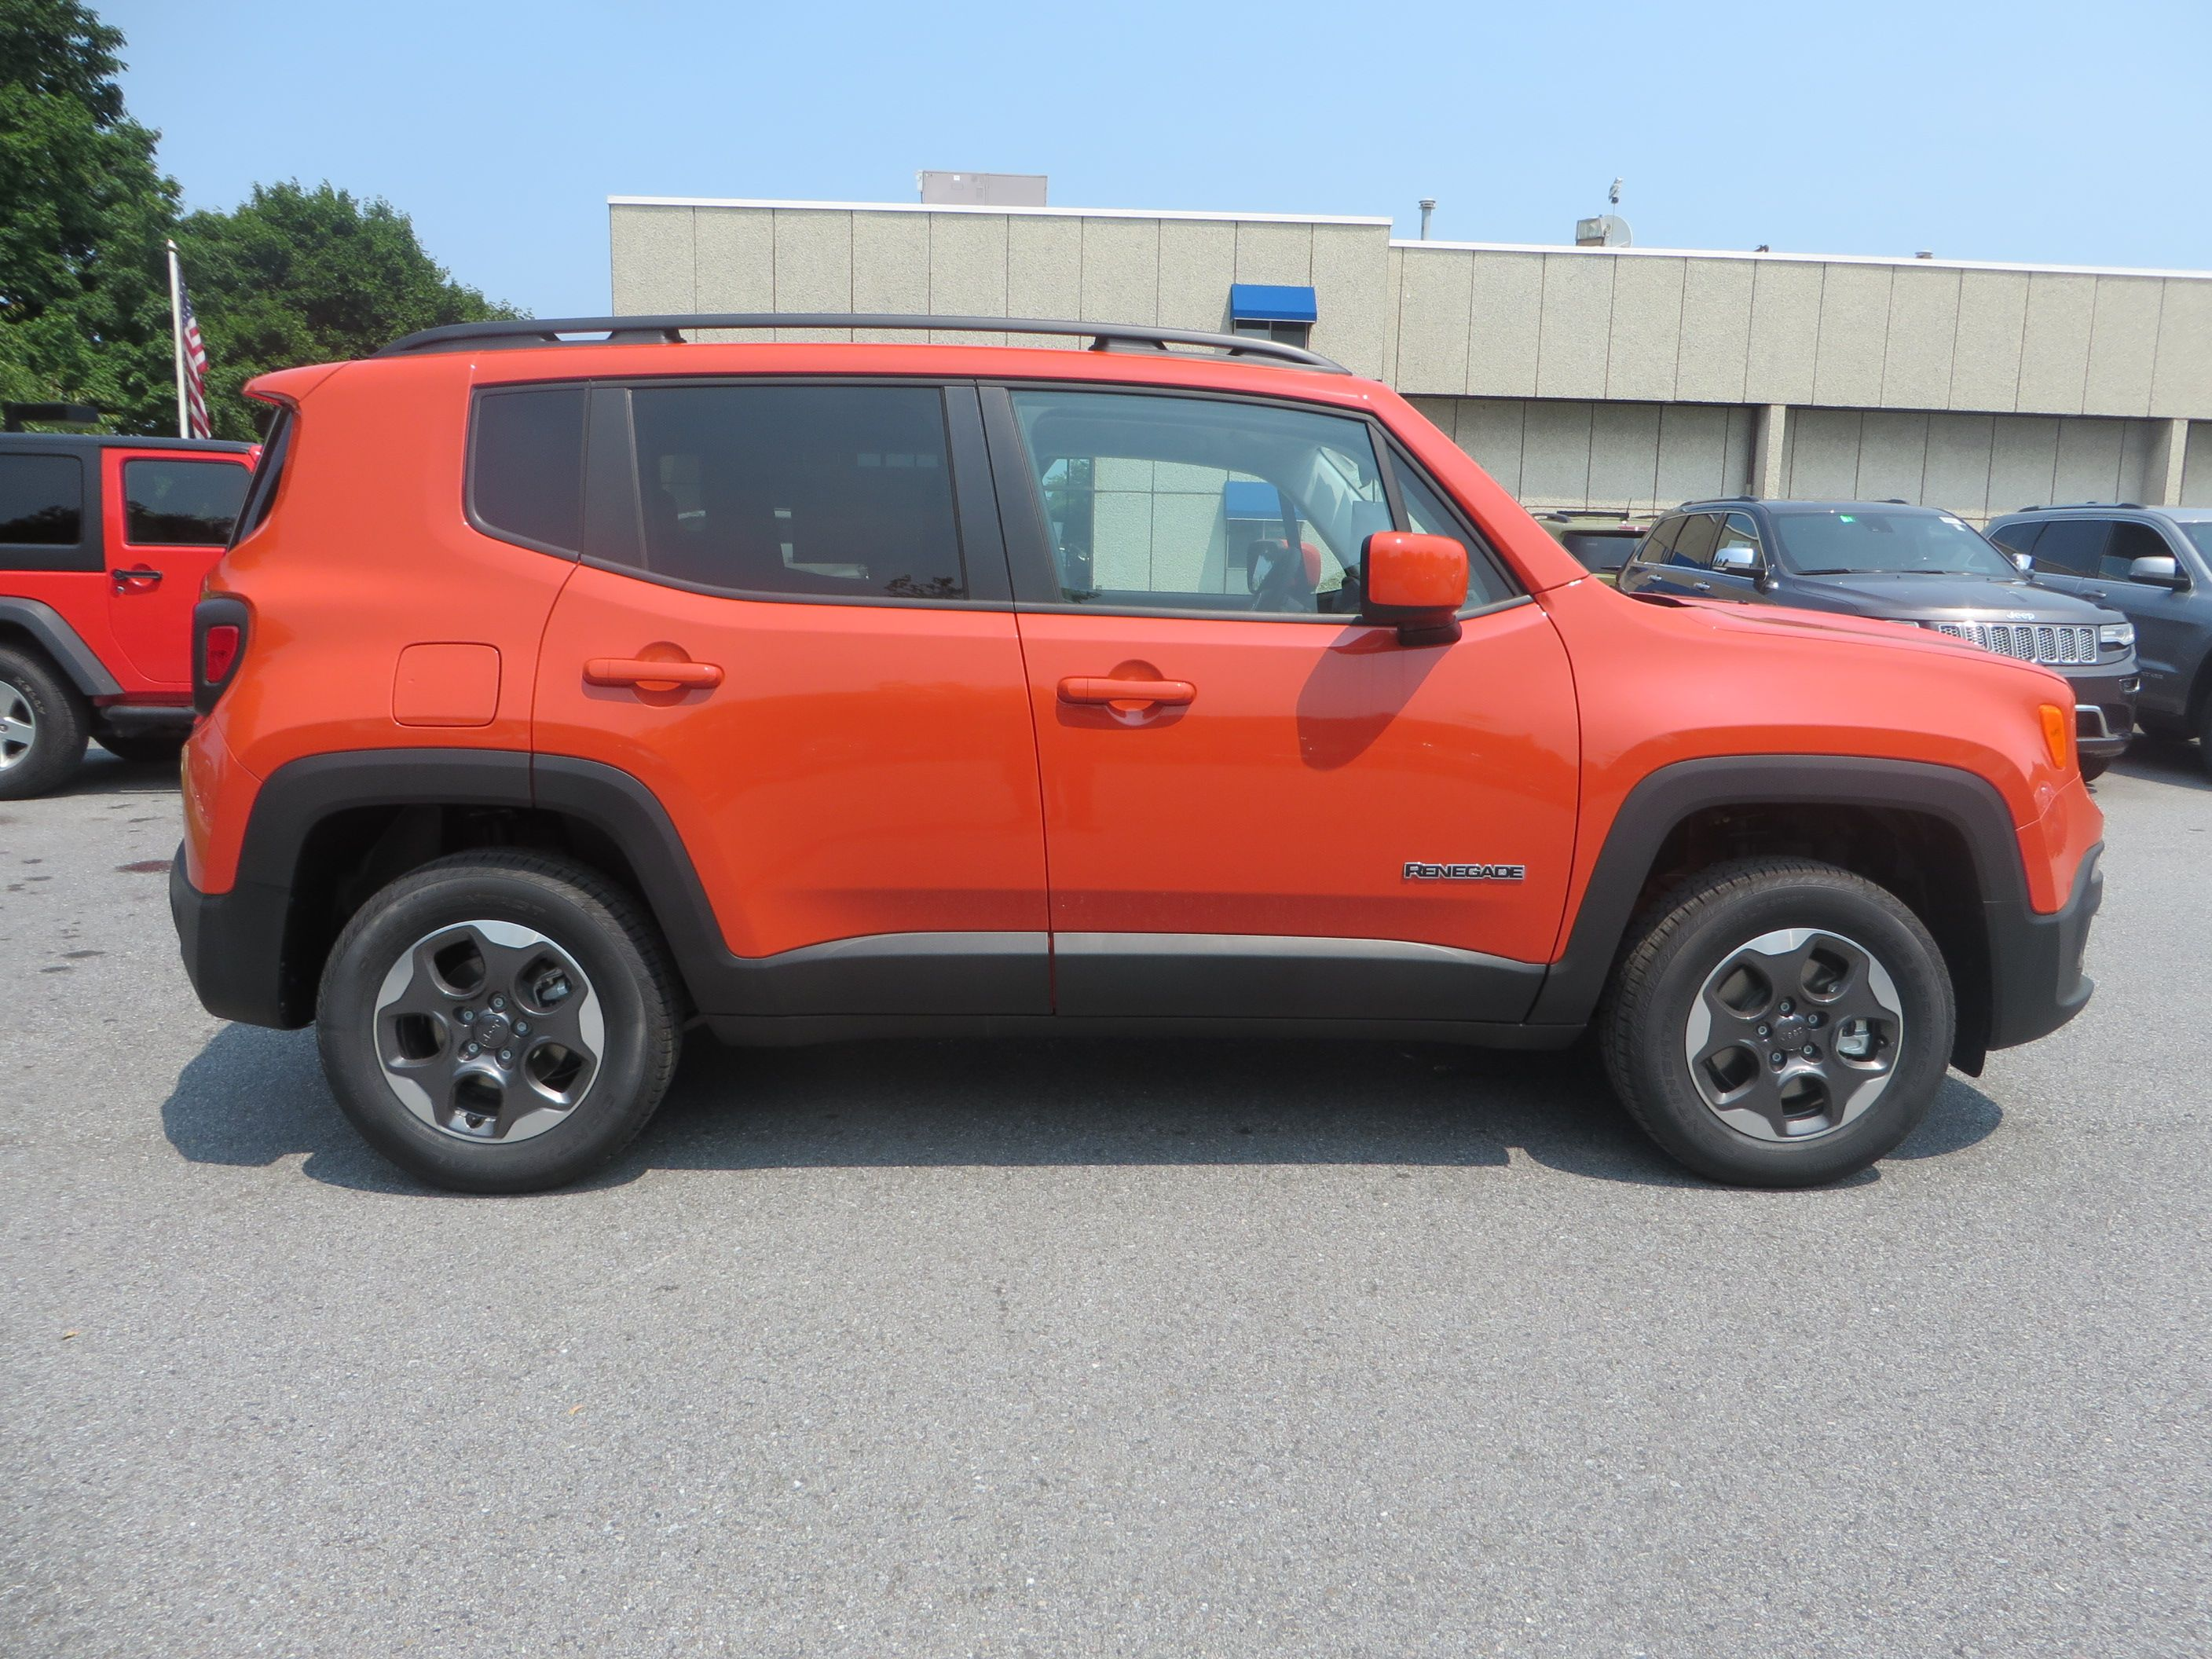 Our First 2015 Jeep Renegade Latitude With A Manual Transmission In Omaha Orange 2015 Jeep Renegade Jeep Renegade Jeep